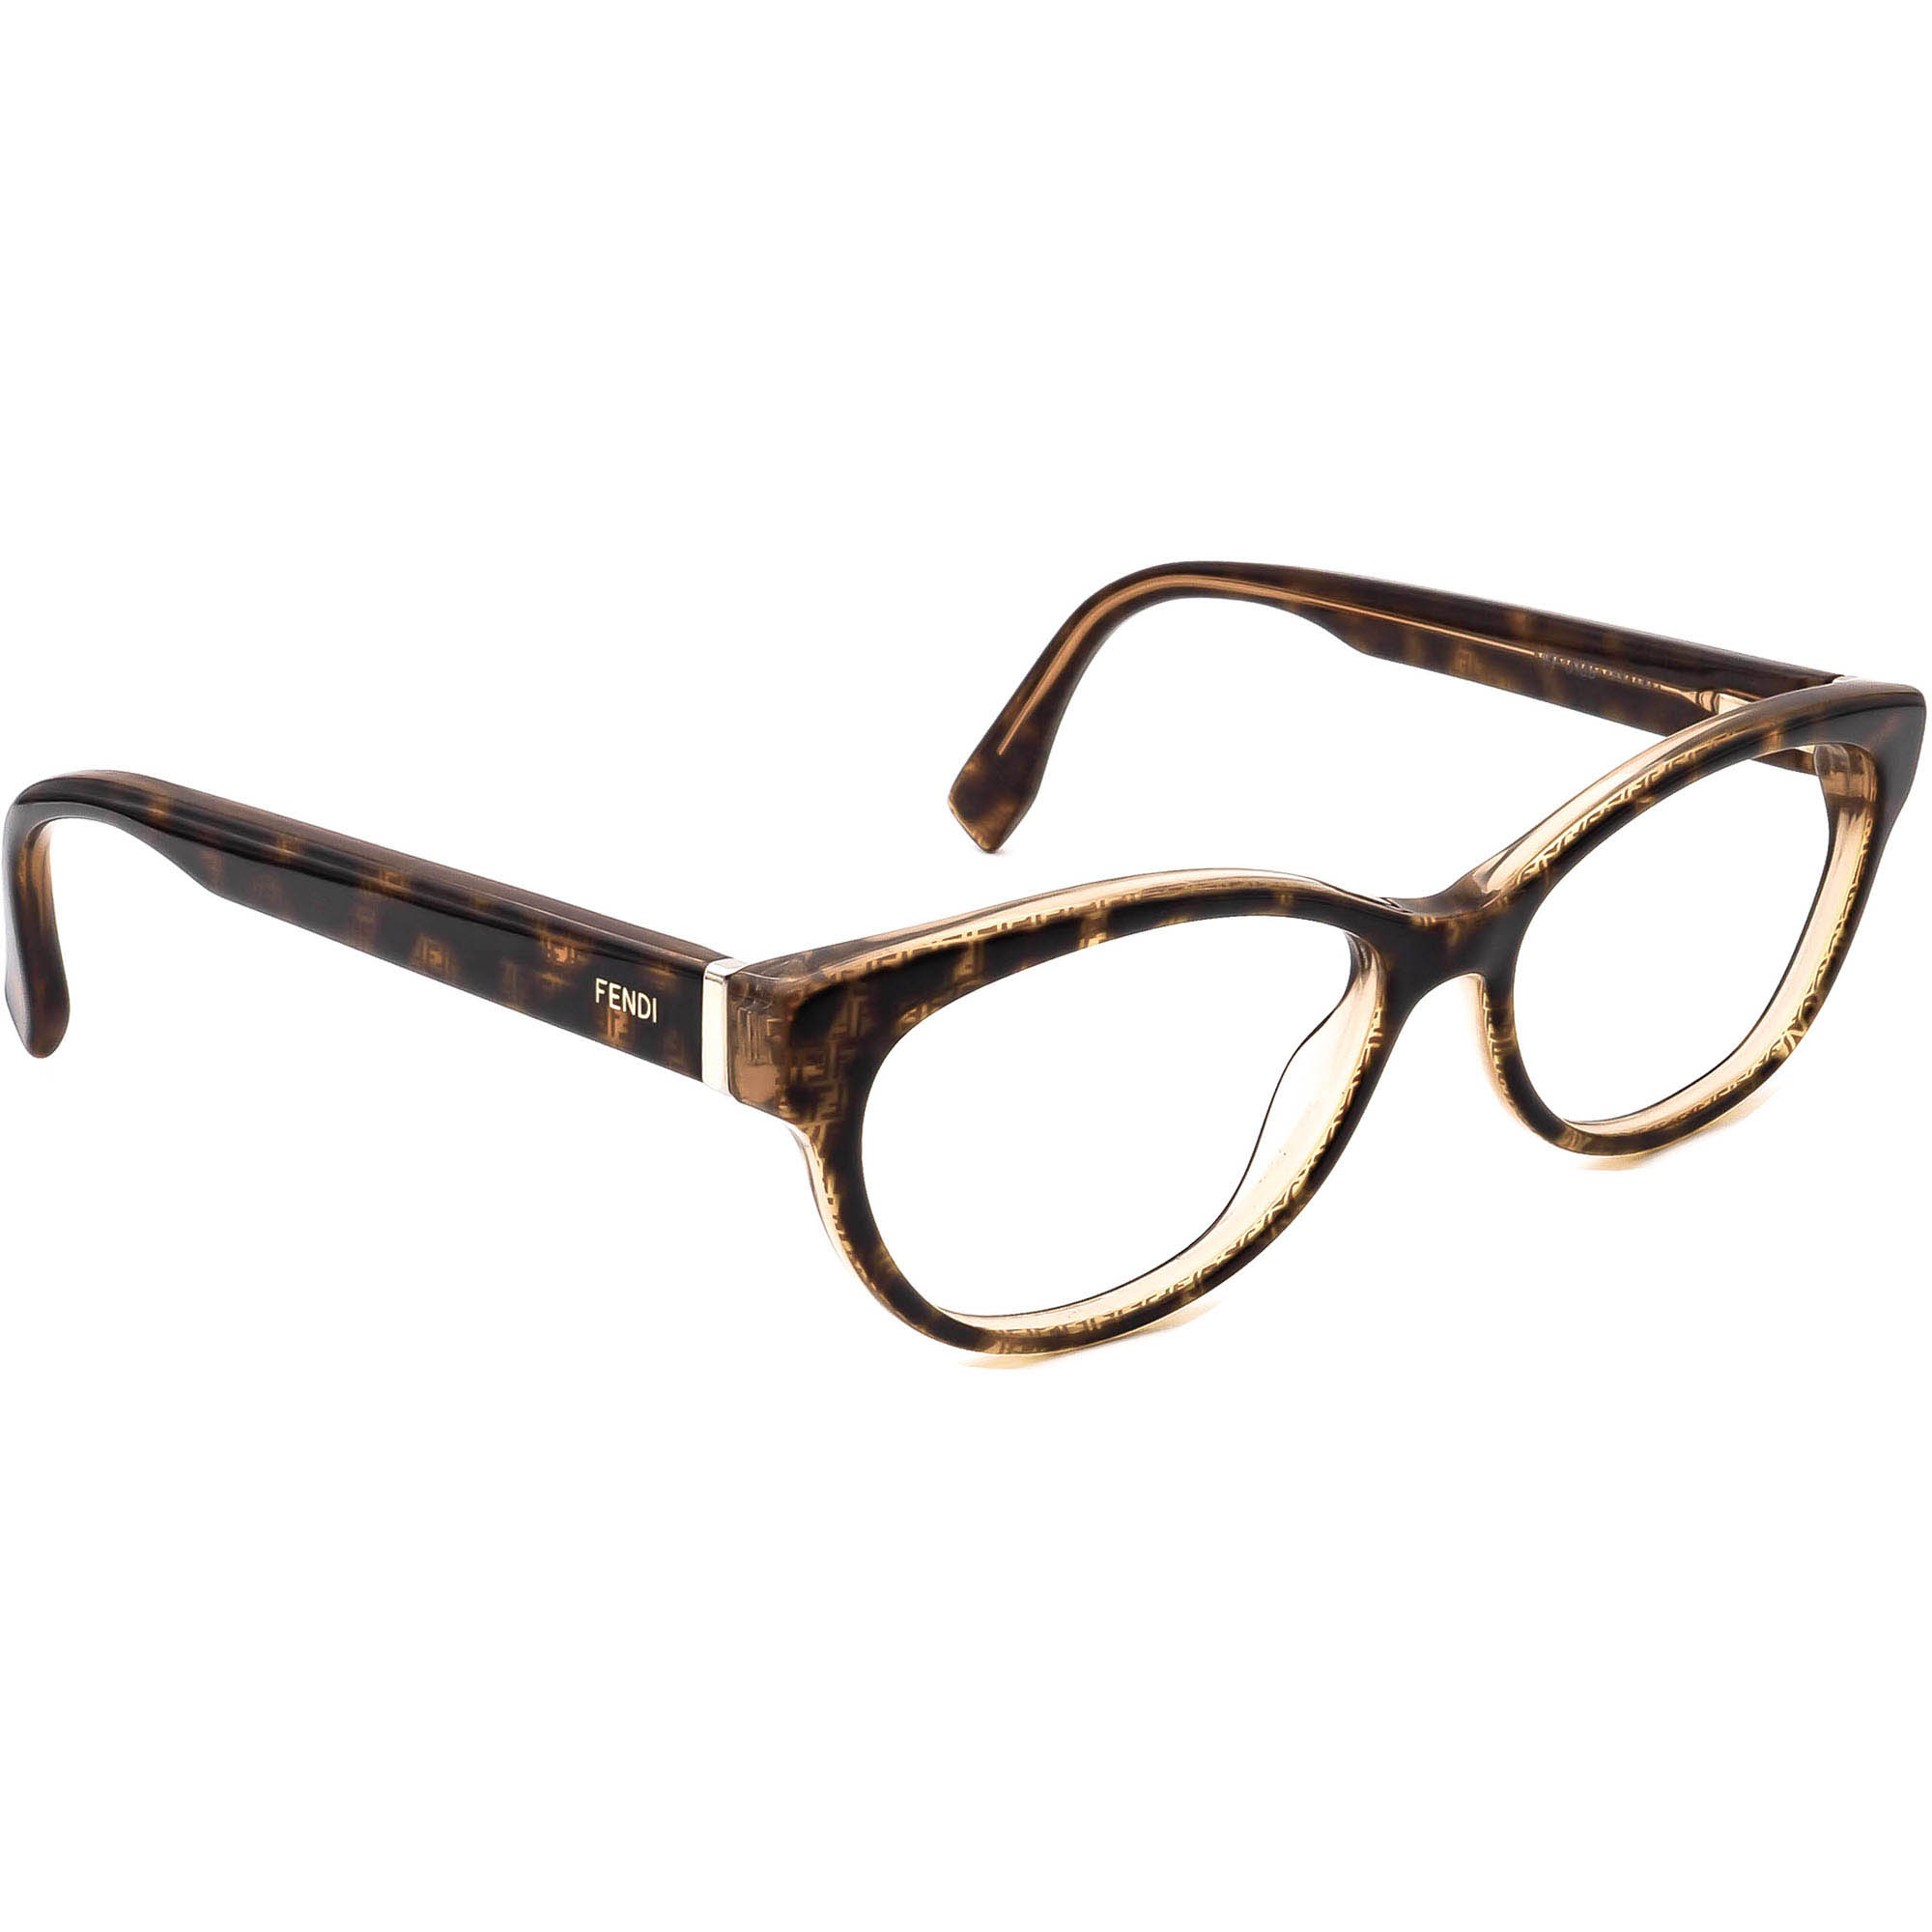 Fendi FF 0100 7PM Eyeglasses